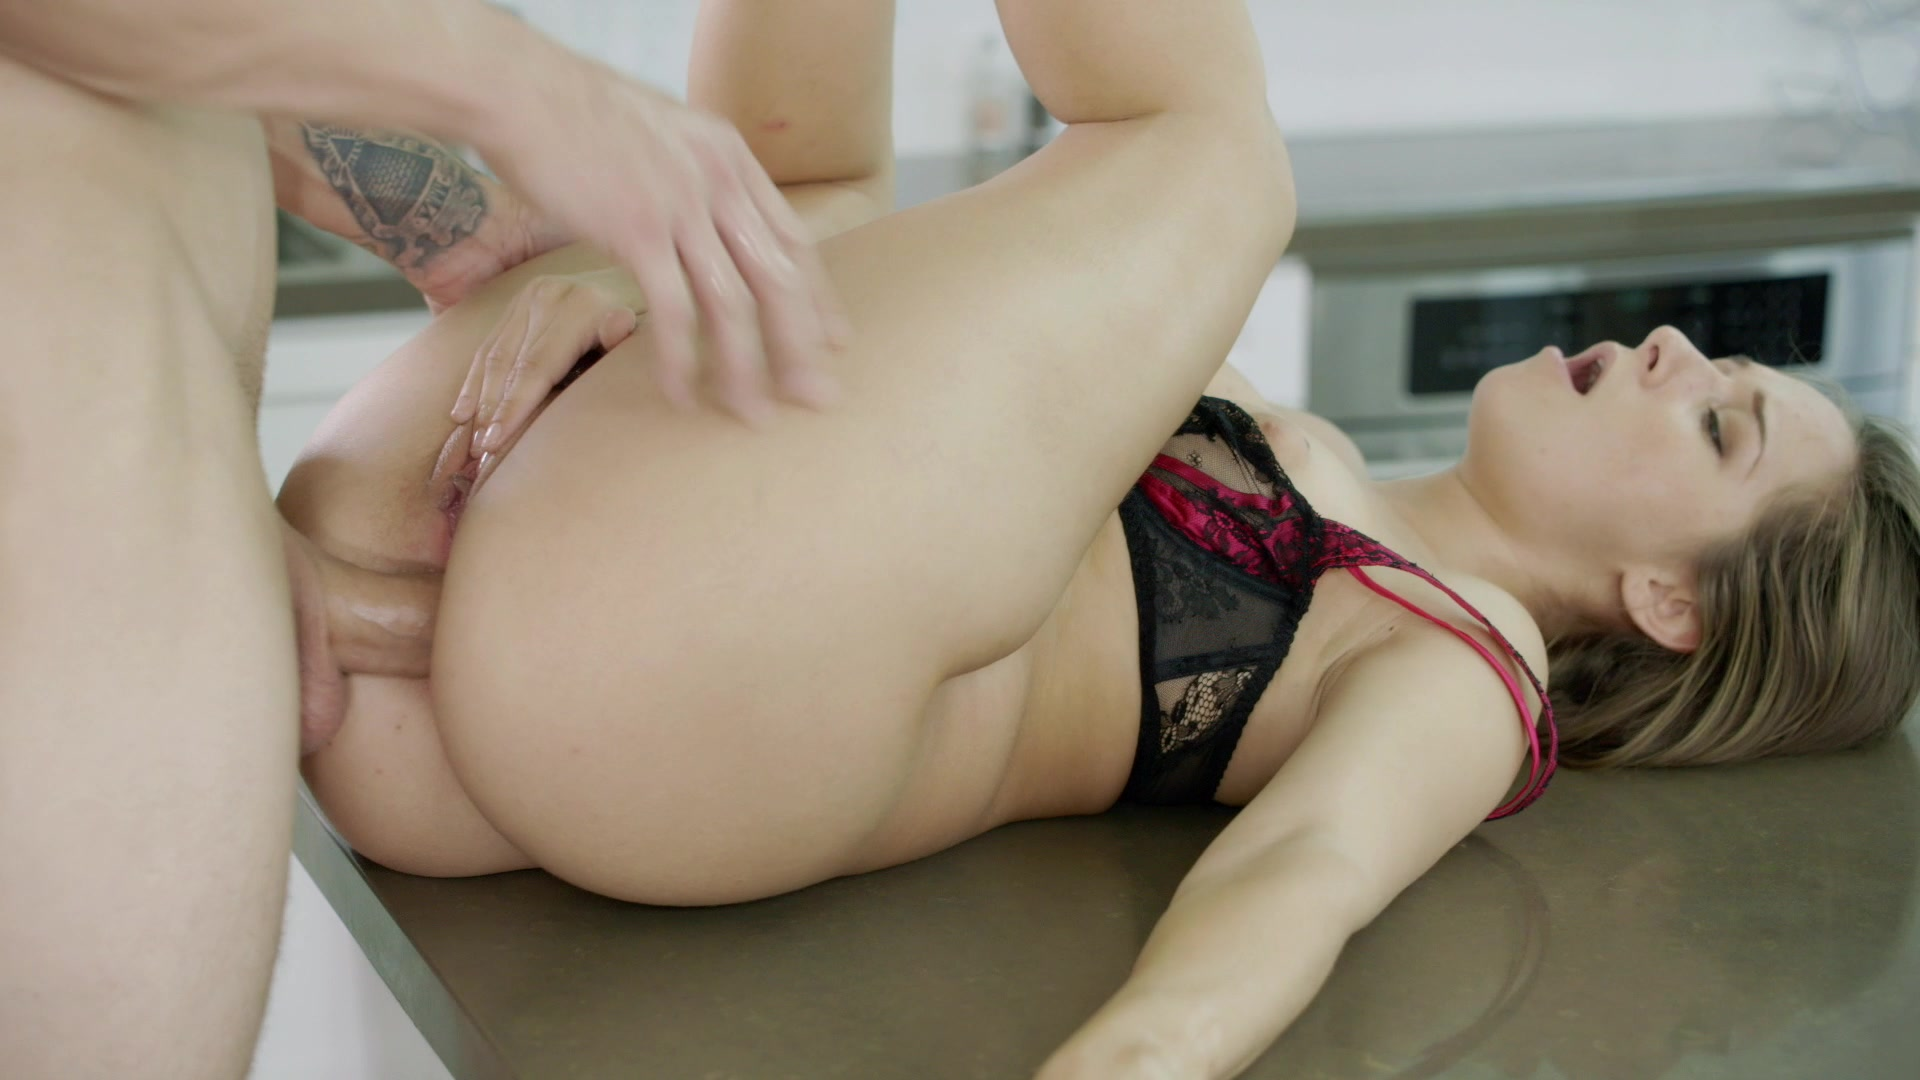 Scene with Cassidy Klein - image 17 out of 20